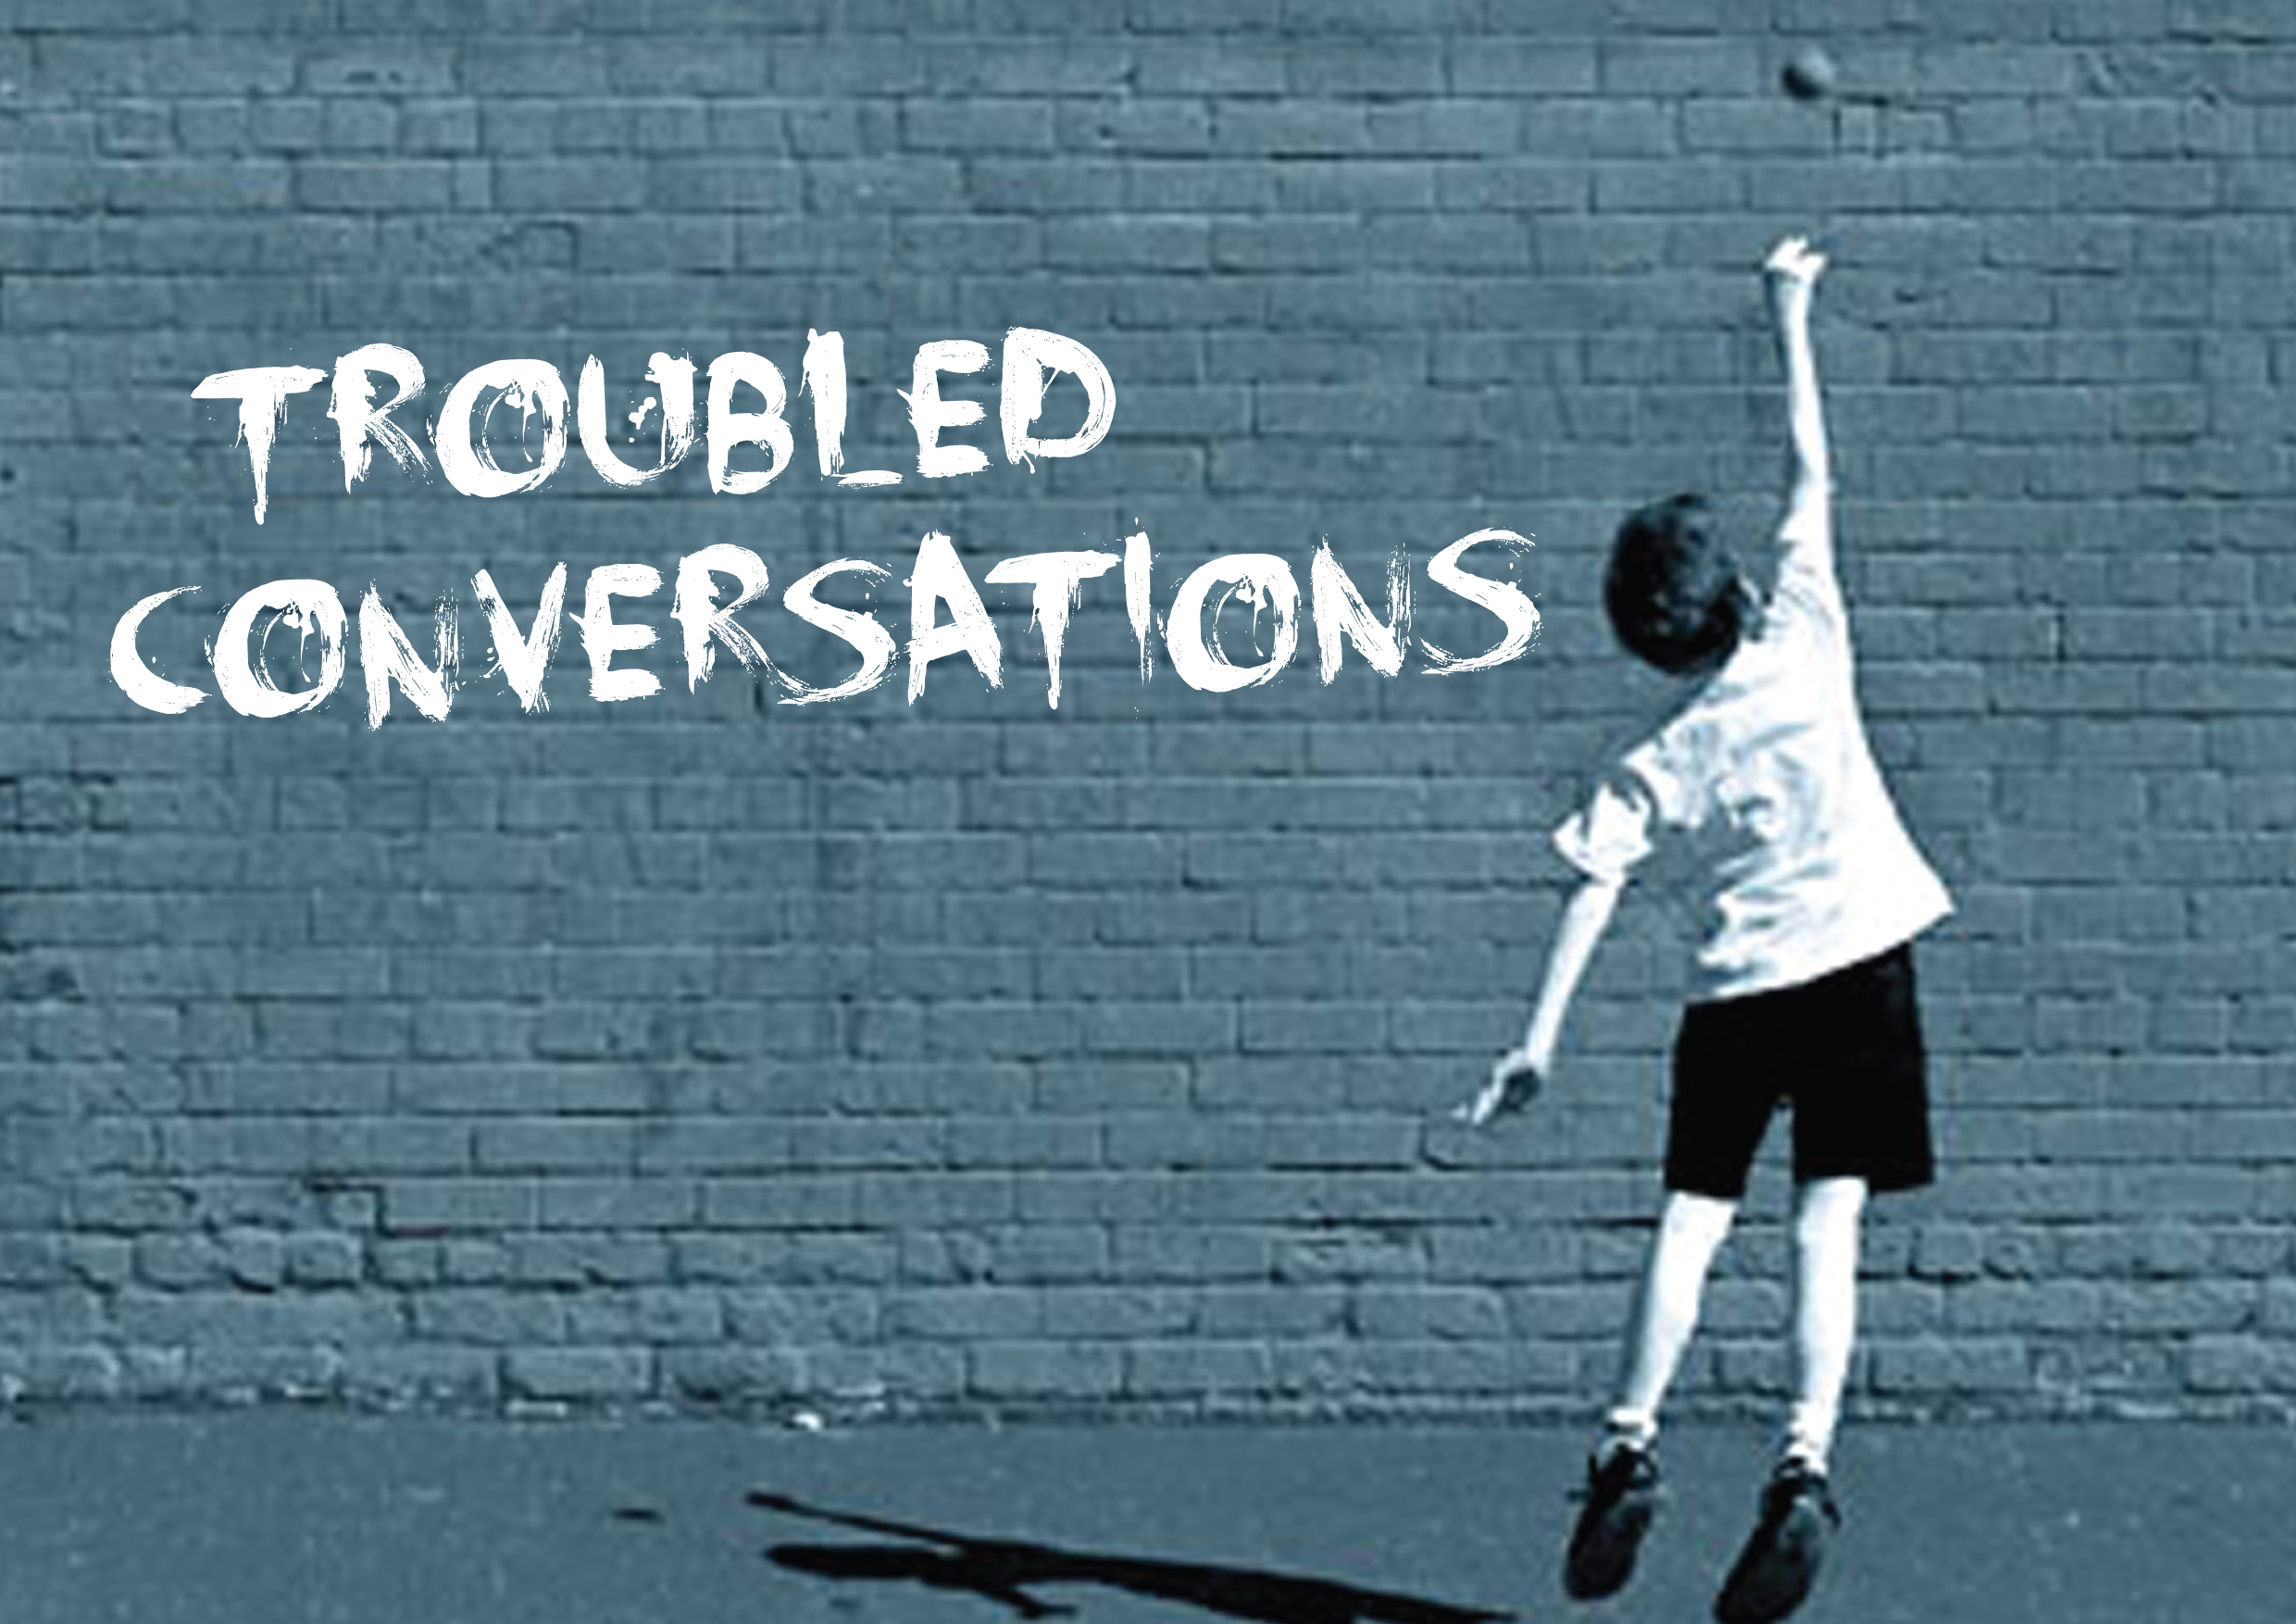 Troubled Conversations